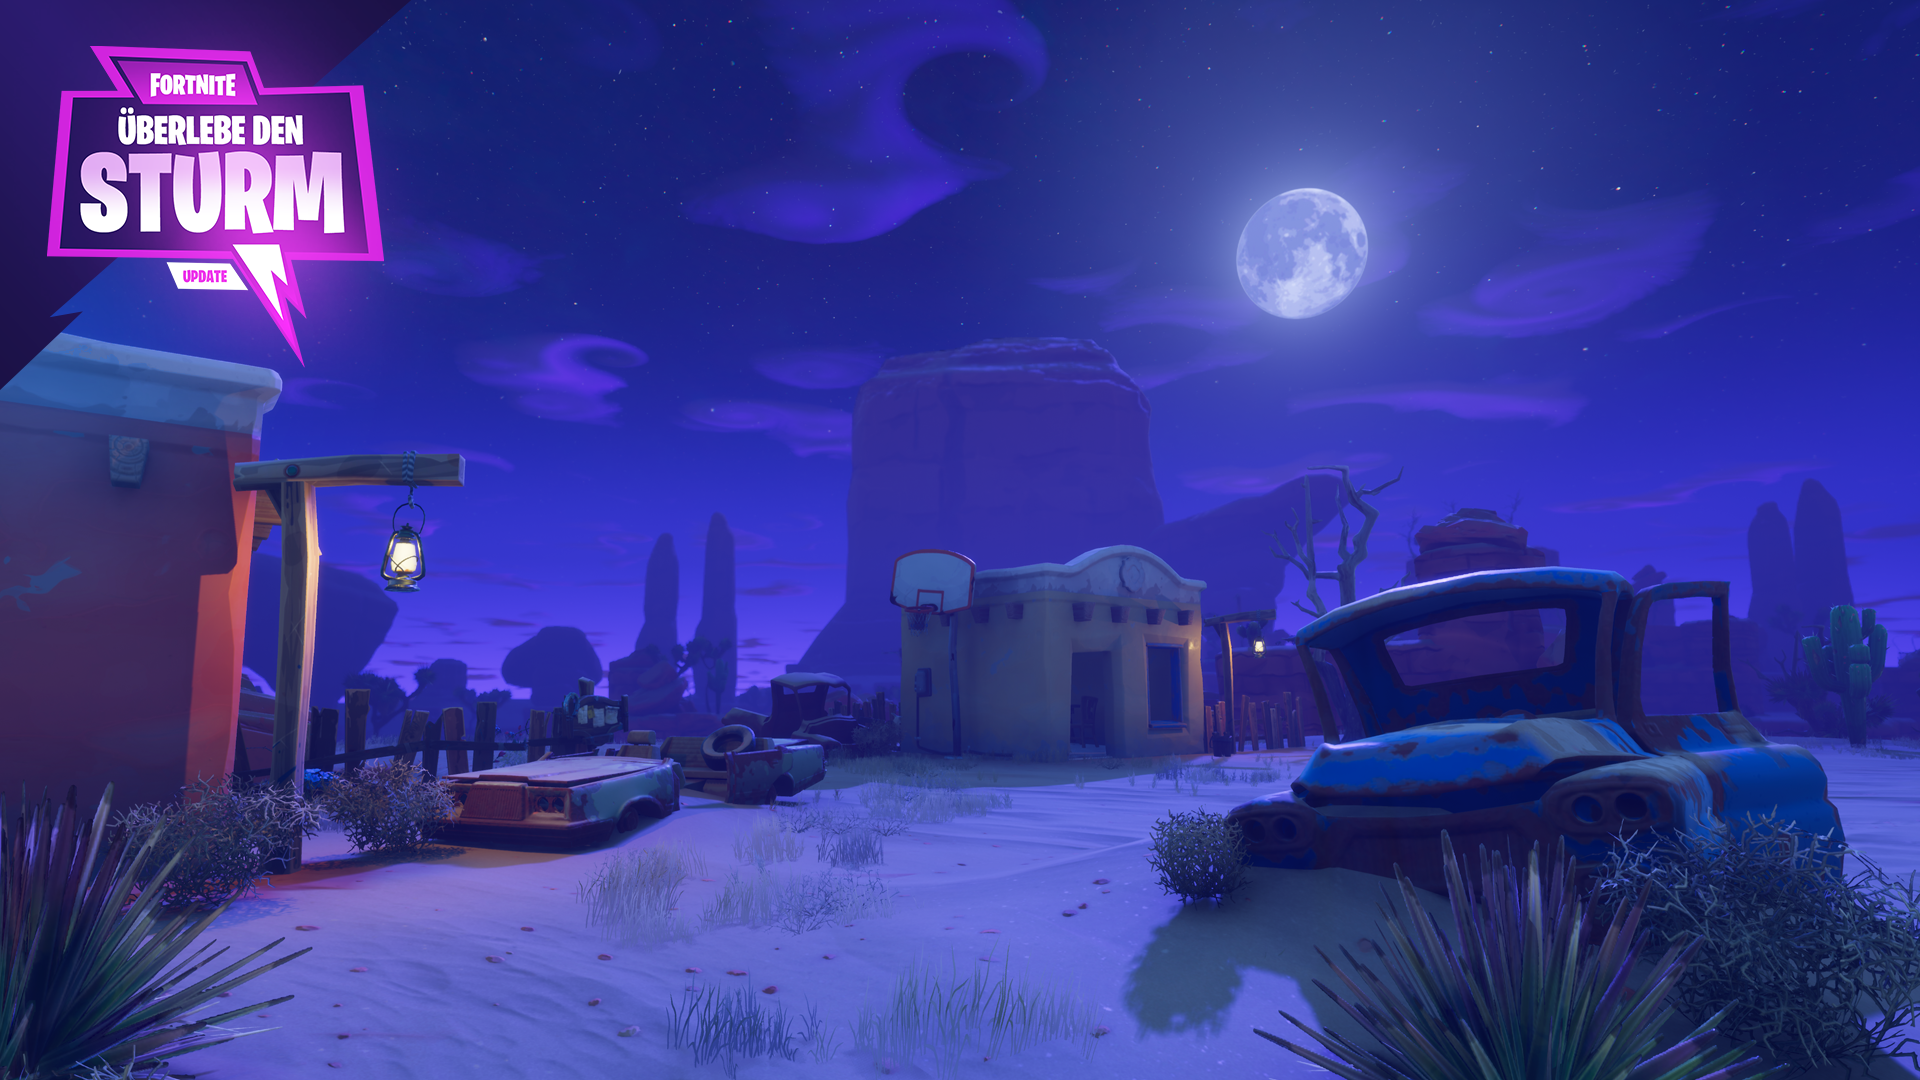 Fortnite%2Fblog%2Fsurvive-the-storm---release-notes%2FDE_2-Canny-Valley-1920x1080-4dfde32dd47f985f66f744ebf5b05309ce7fbe96